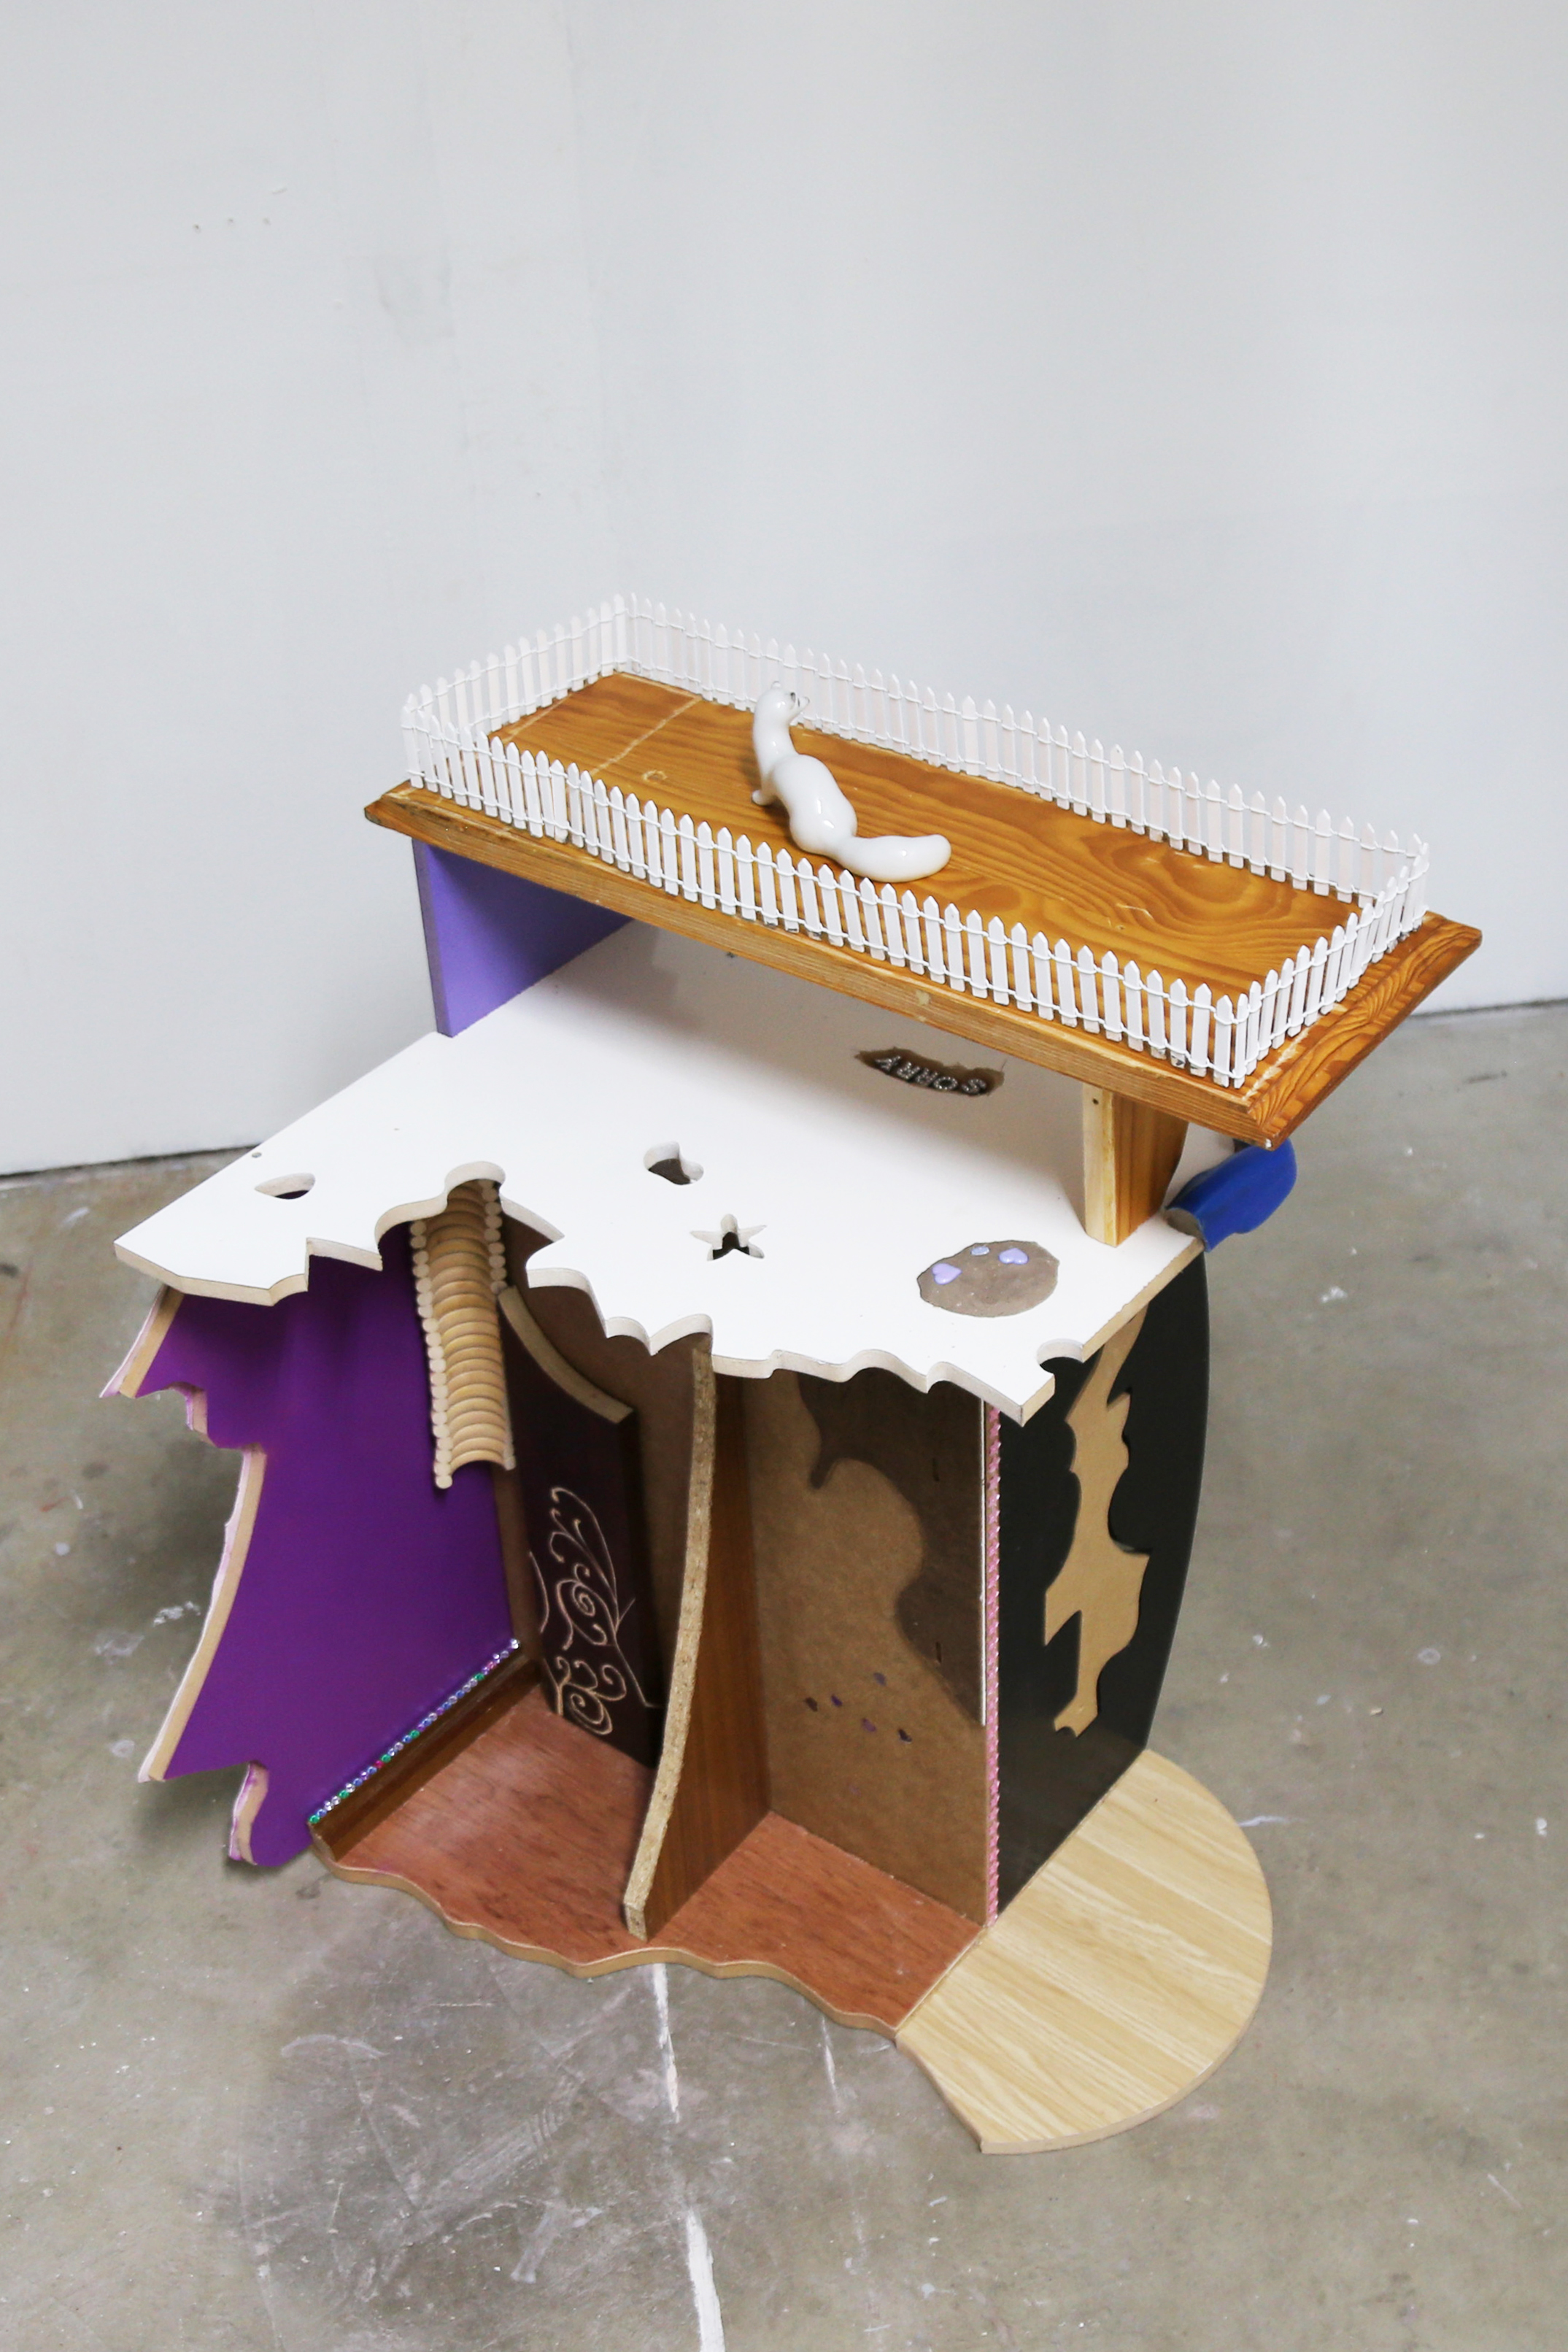 A white, purple, black and brown sculpture on a concrete floor, viewed from above